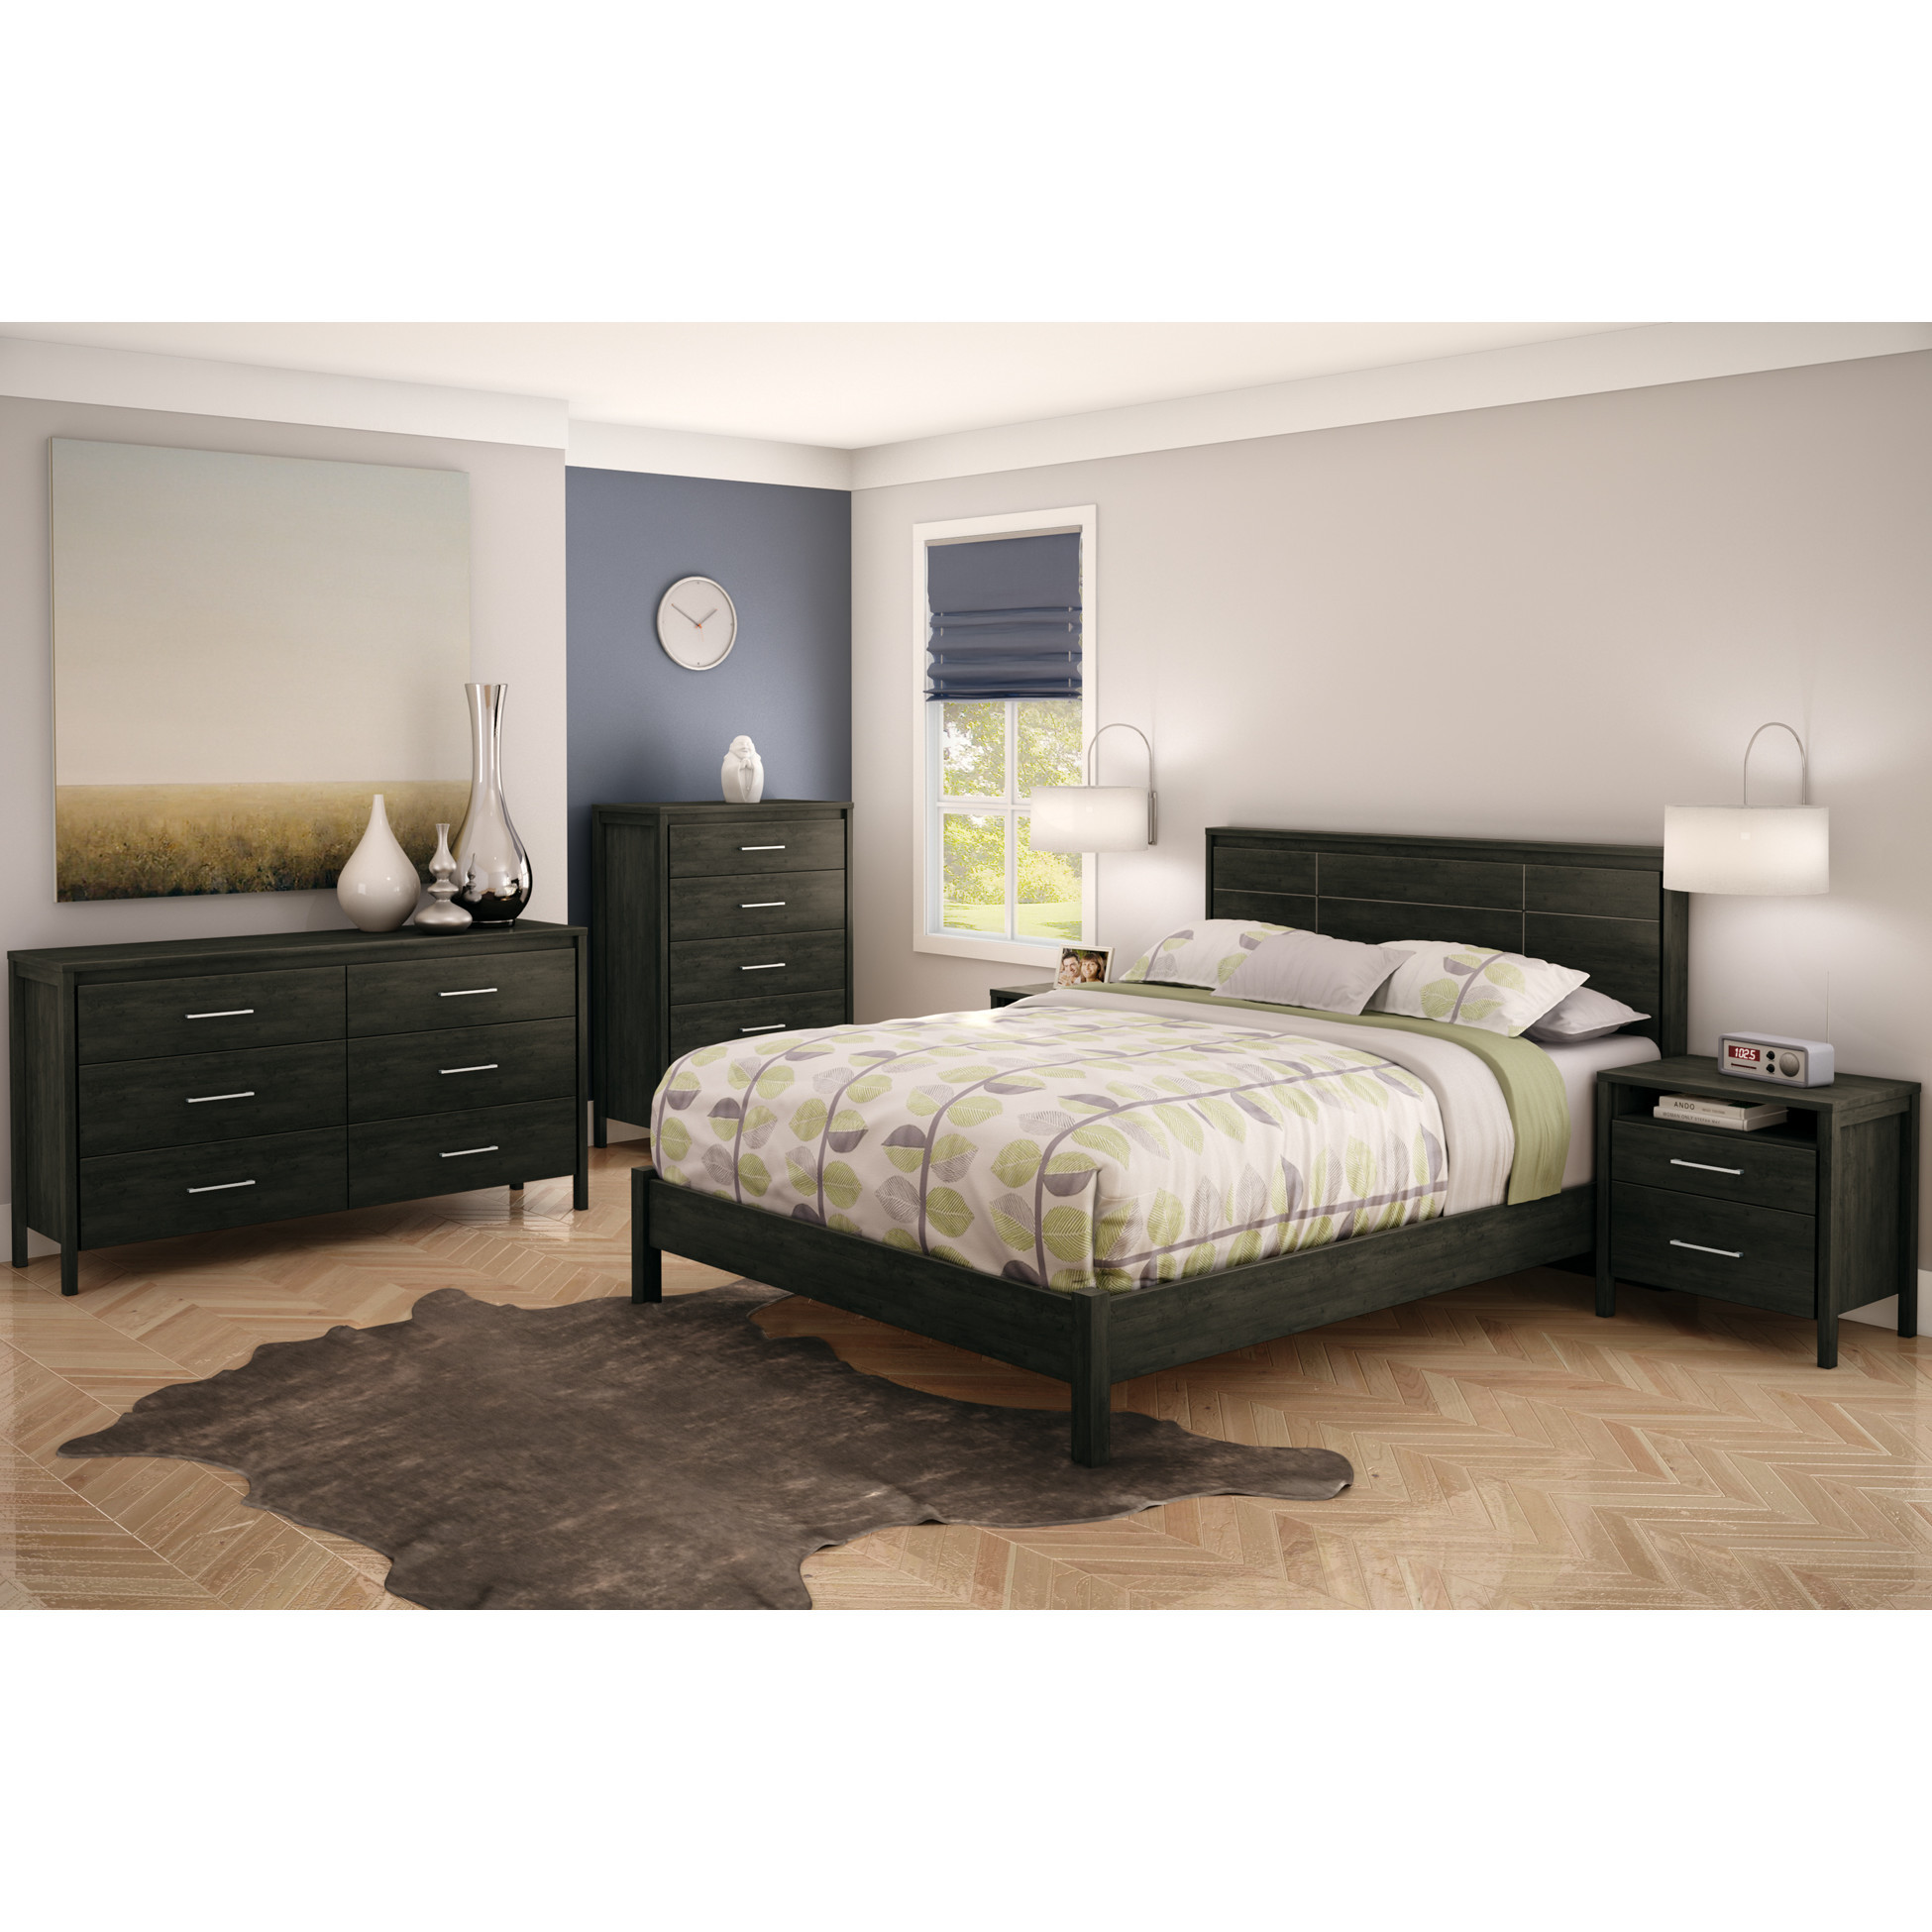 Best ideas about Wayfair Bedroom Sets . Save or Pin South Shore Gravity Queen Platform Customizable Bedroom Now.